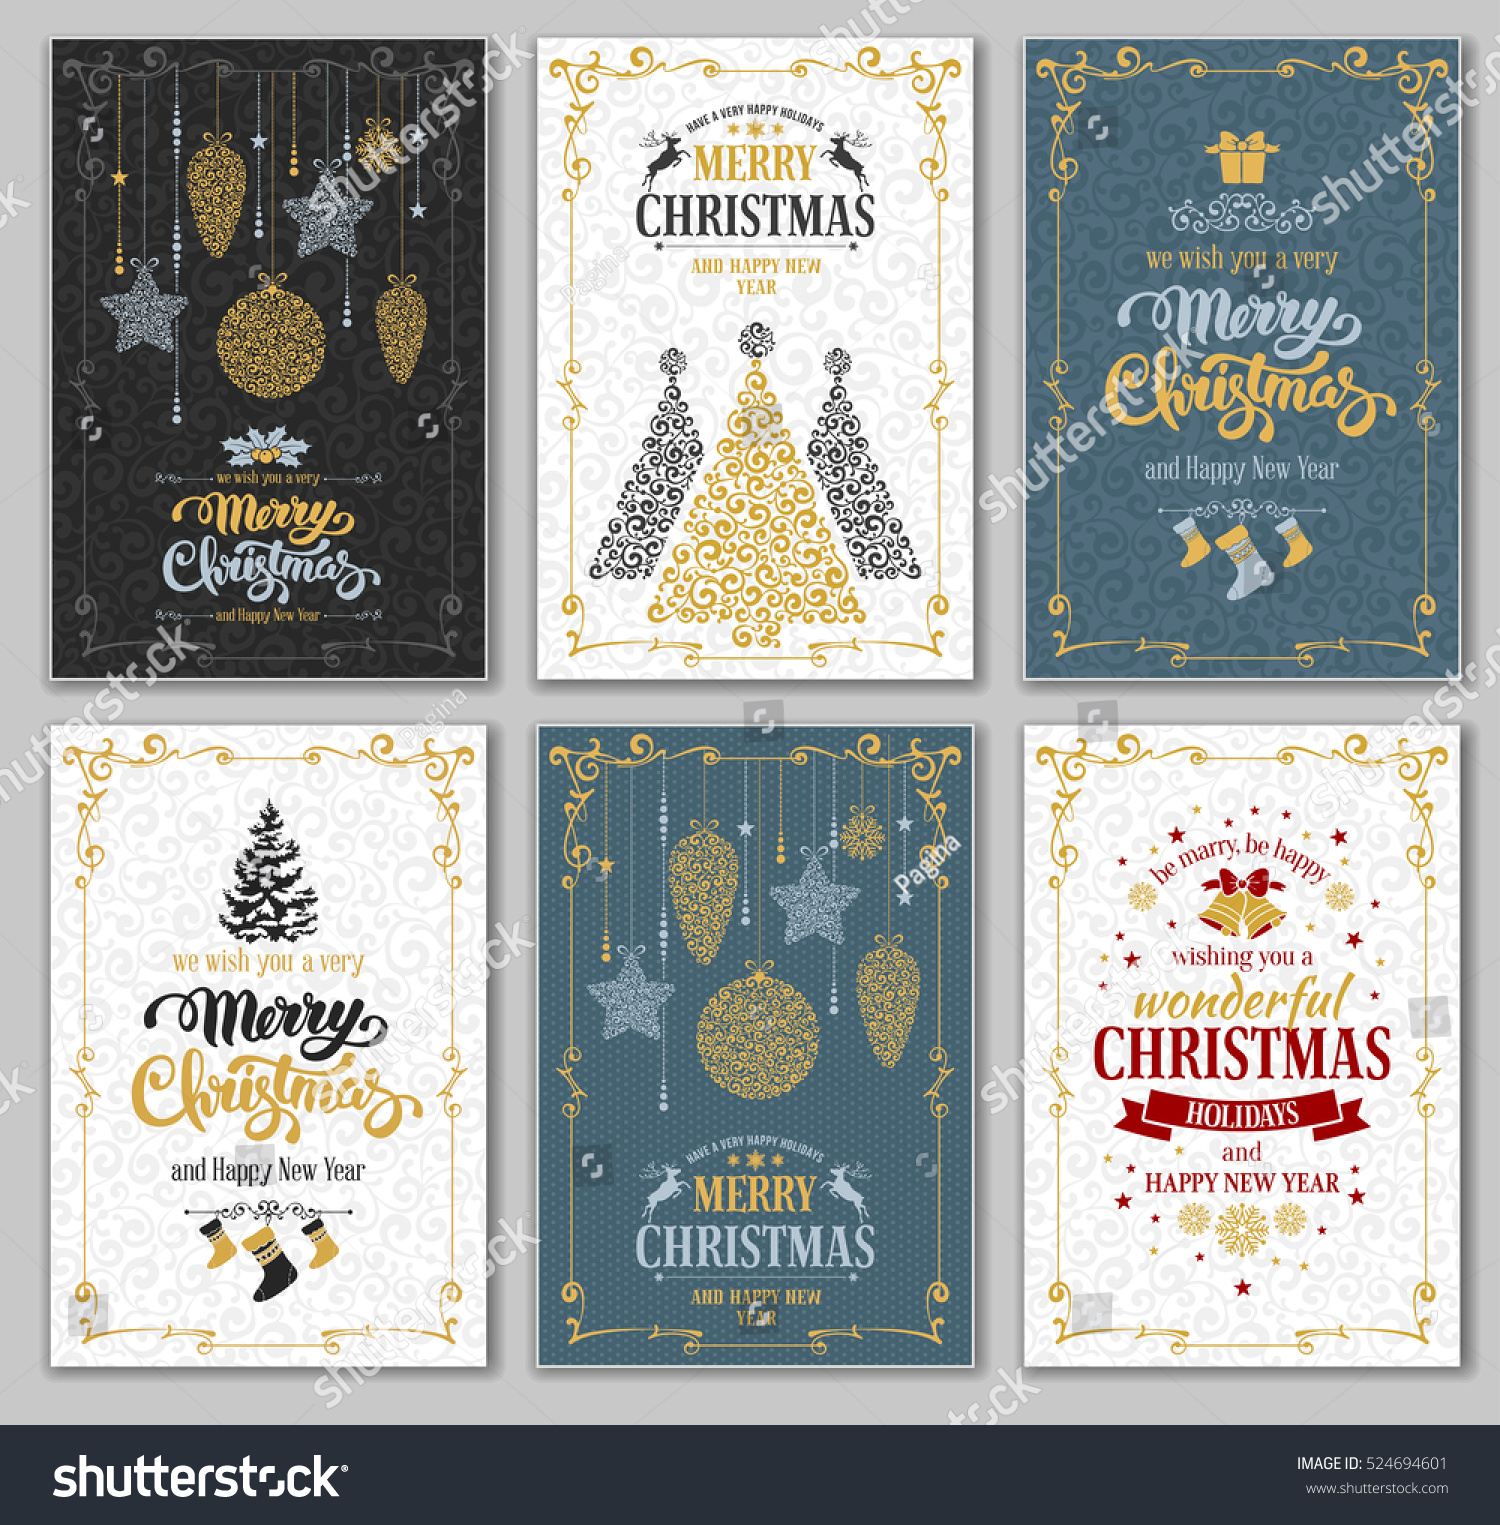 Merry christmas happy new year greeting stock vector royalty free merry christmas and happy new year greeting cards designs set vector graphic in unusual style m4hsunfo